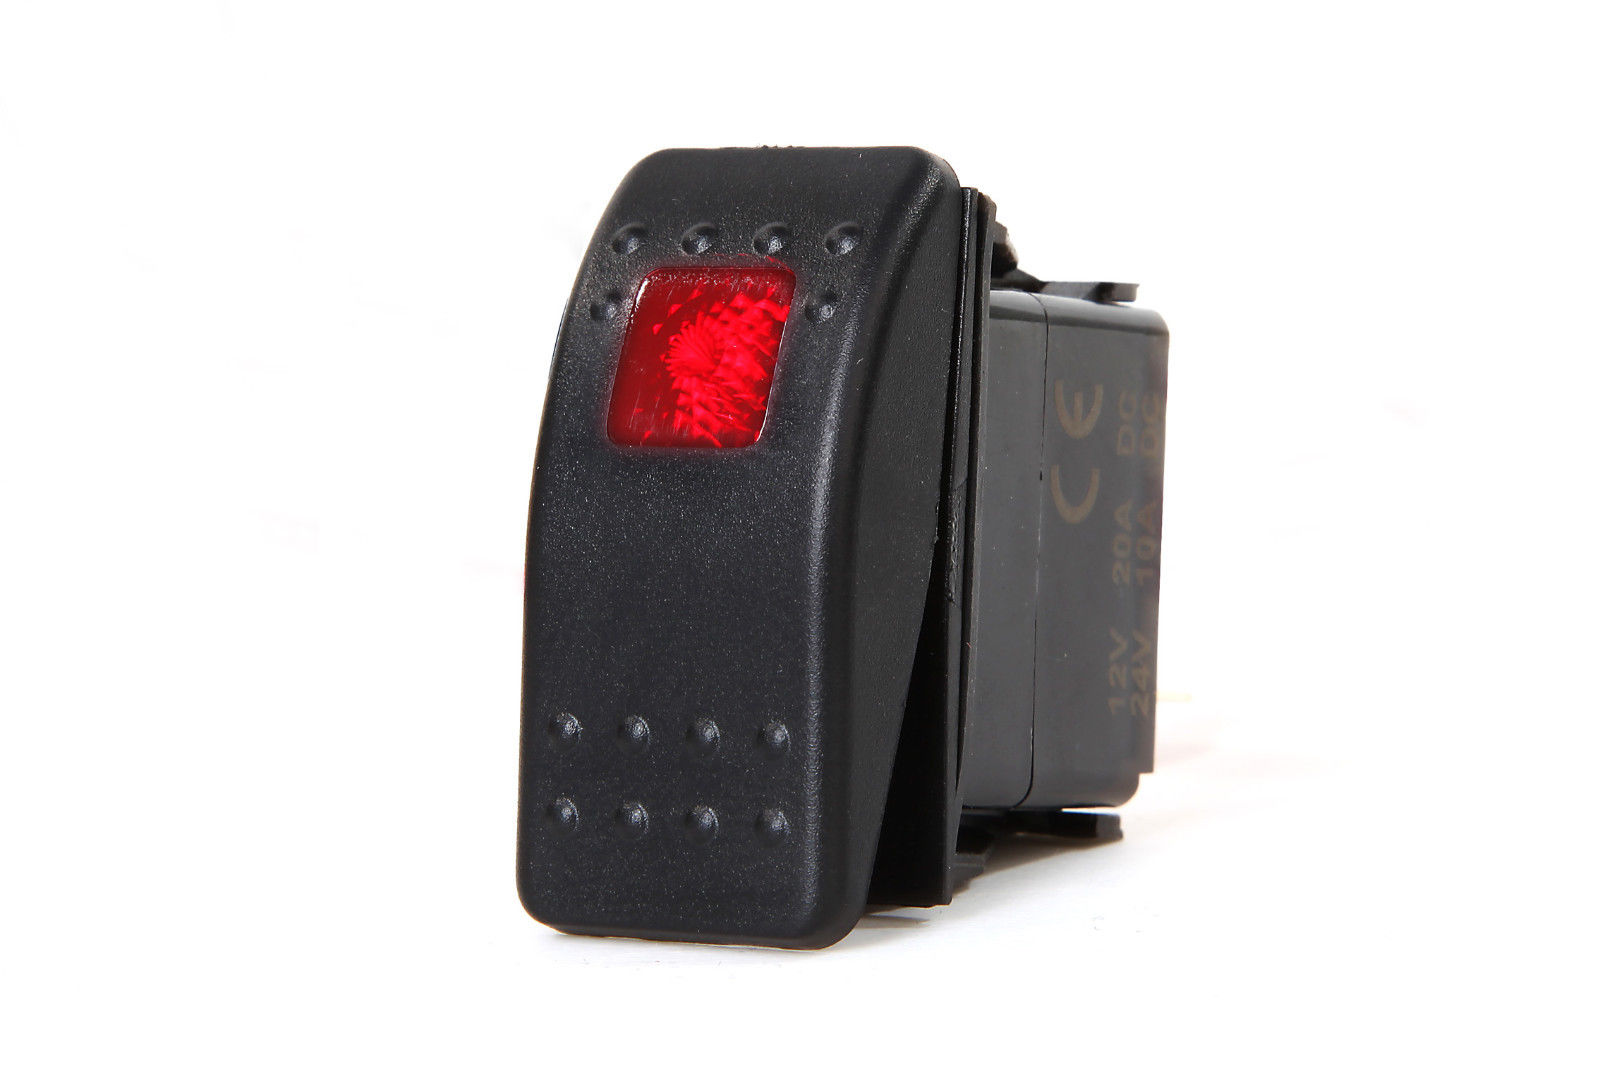 Marine Light Switches: MARINE BOAT TRAILER RV ROCKER SWITCH ON-OFF SPST 3 PIN 1 RED LED,Lighting